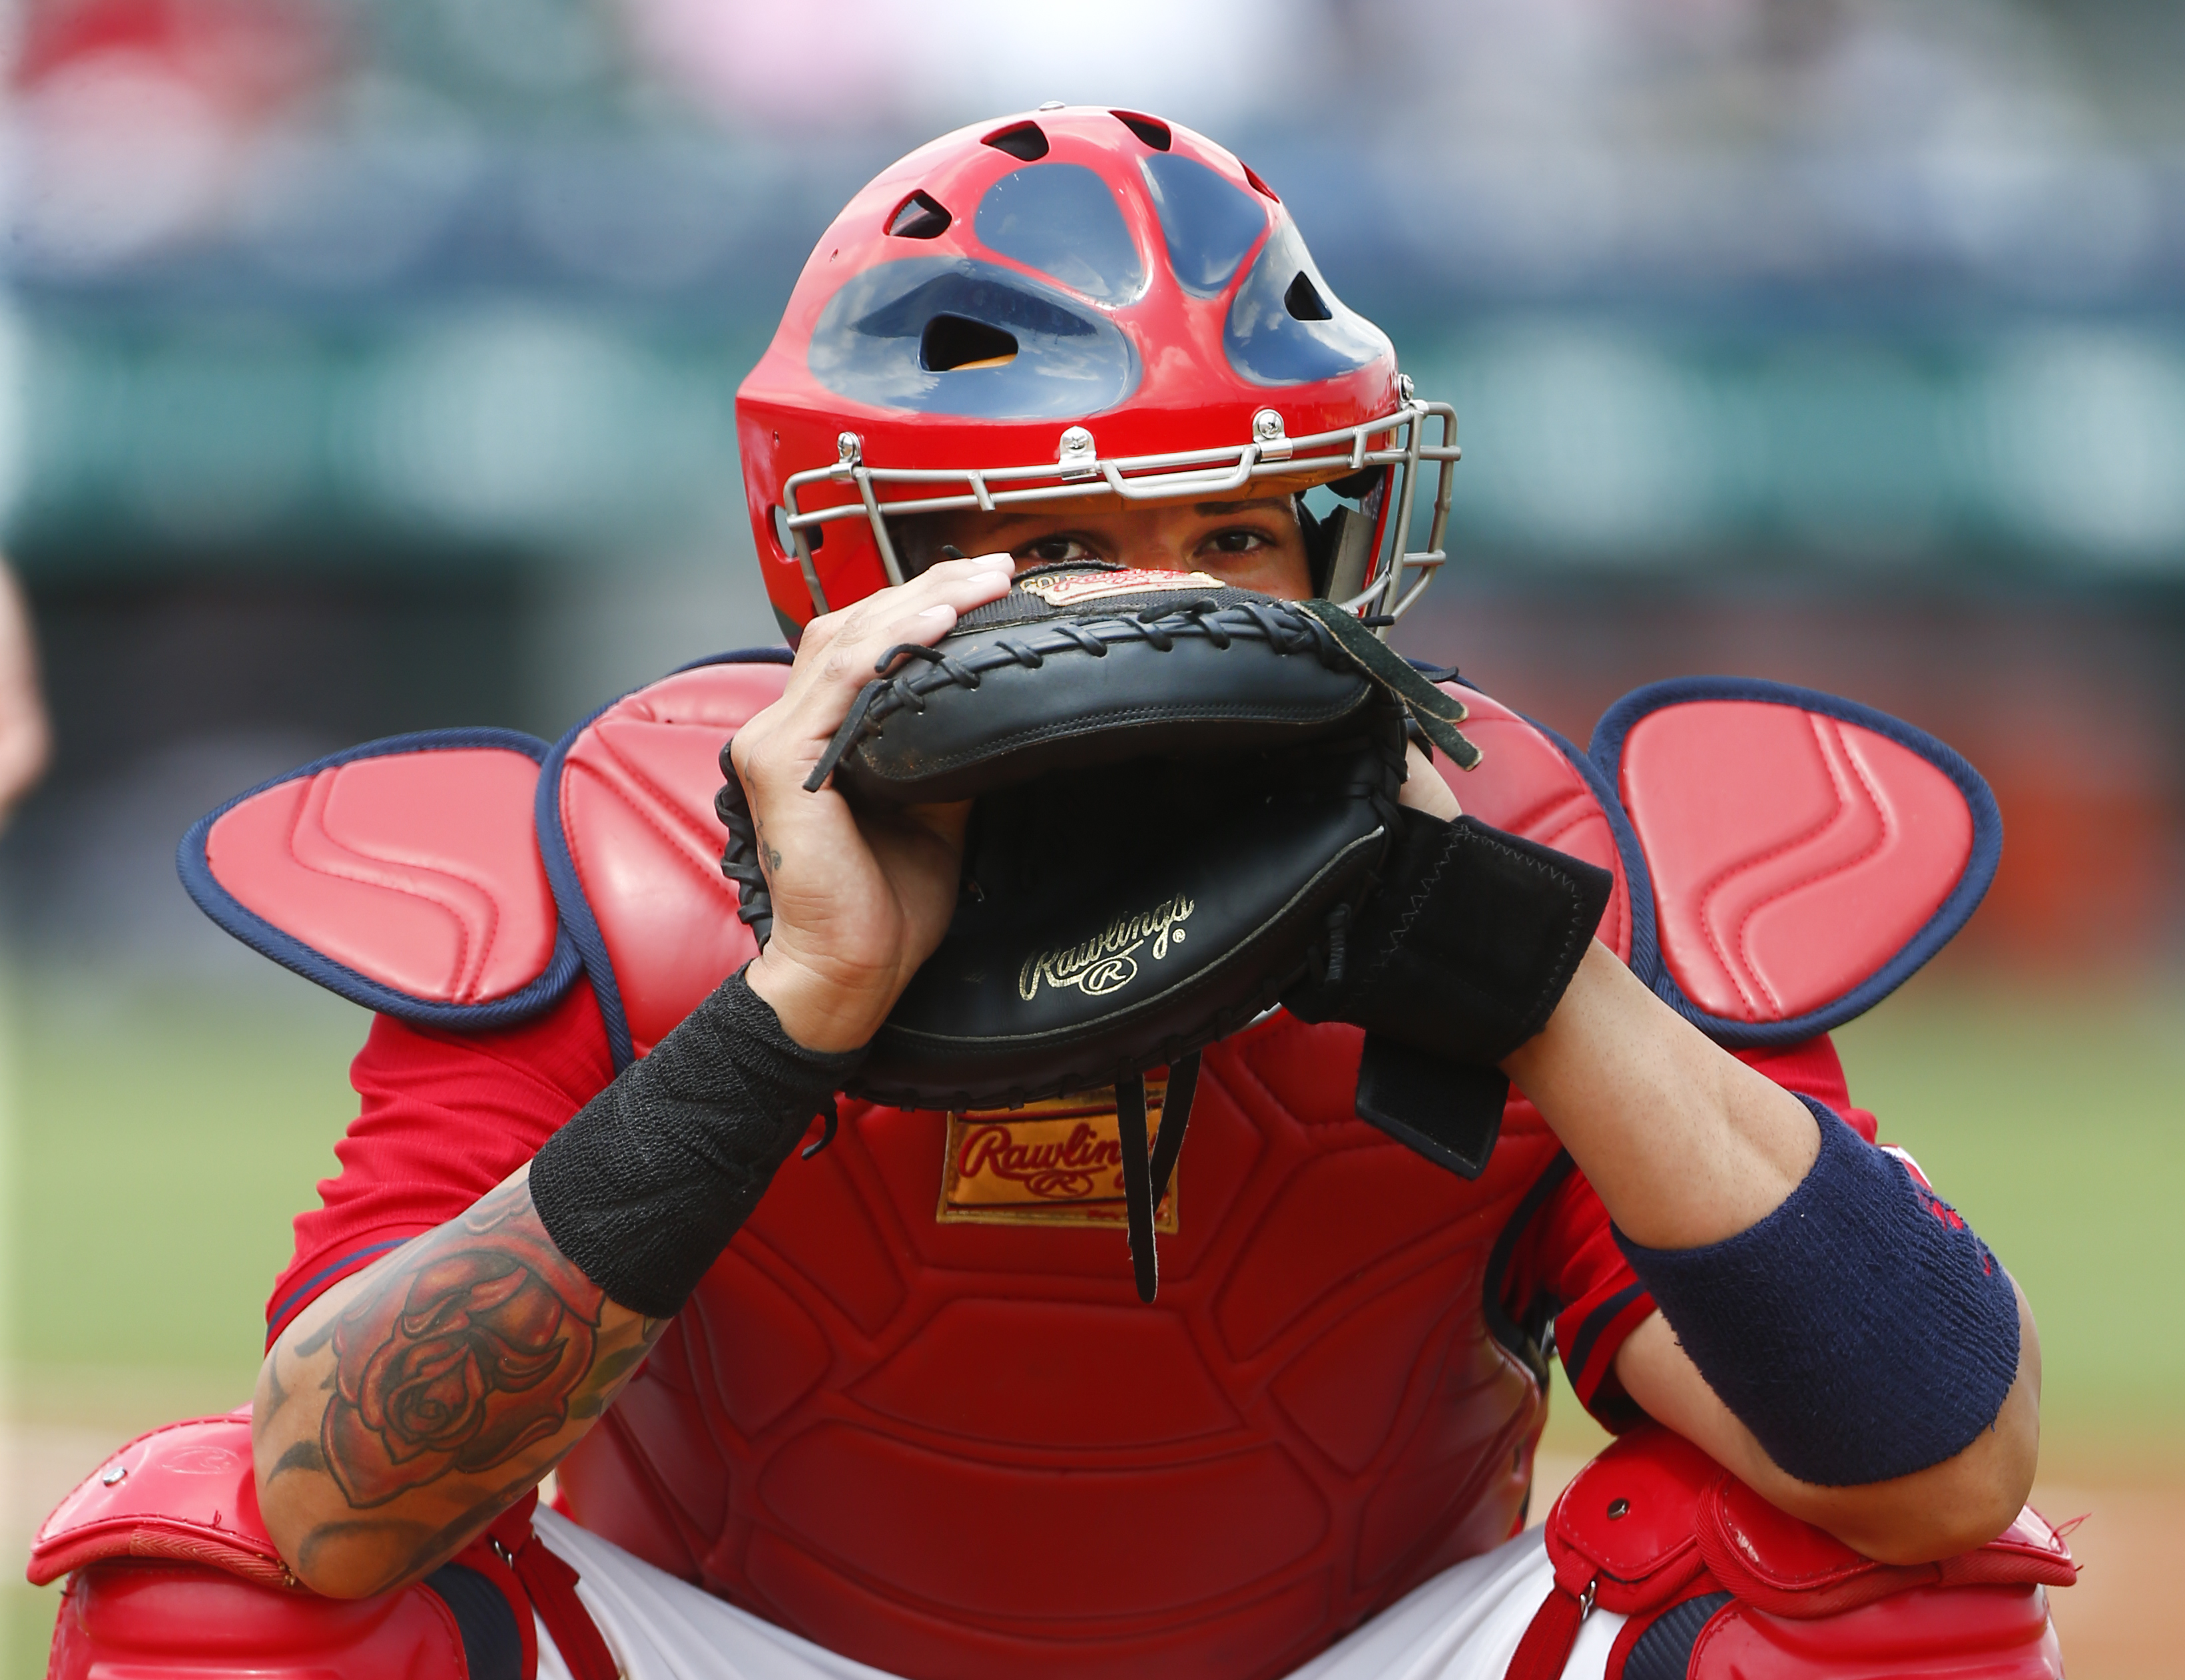 Yadier Molina Forgot How To Frame A Pitch | FiveThirtyEight